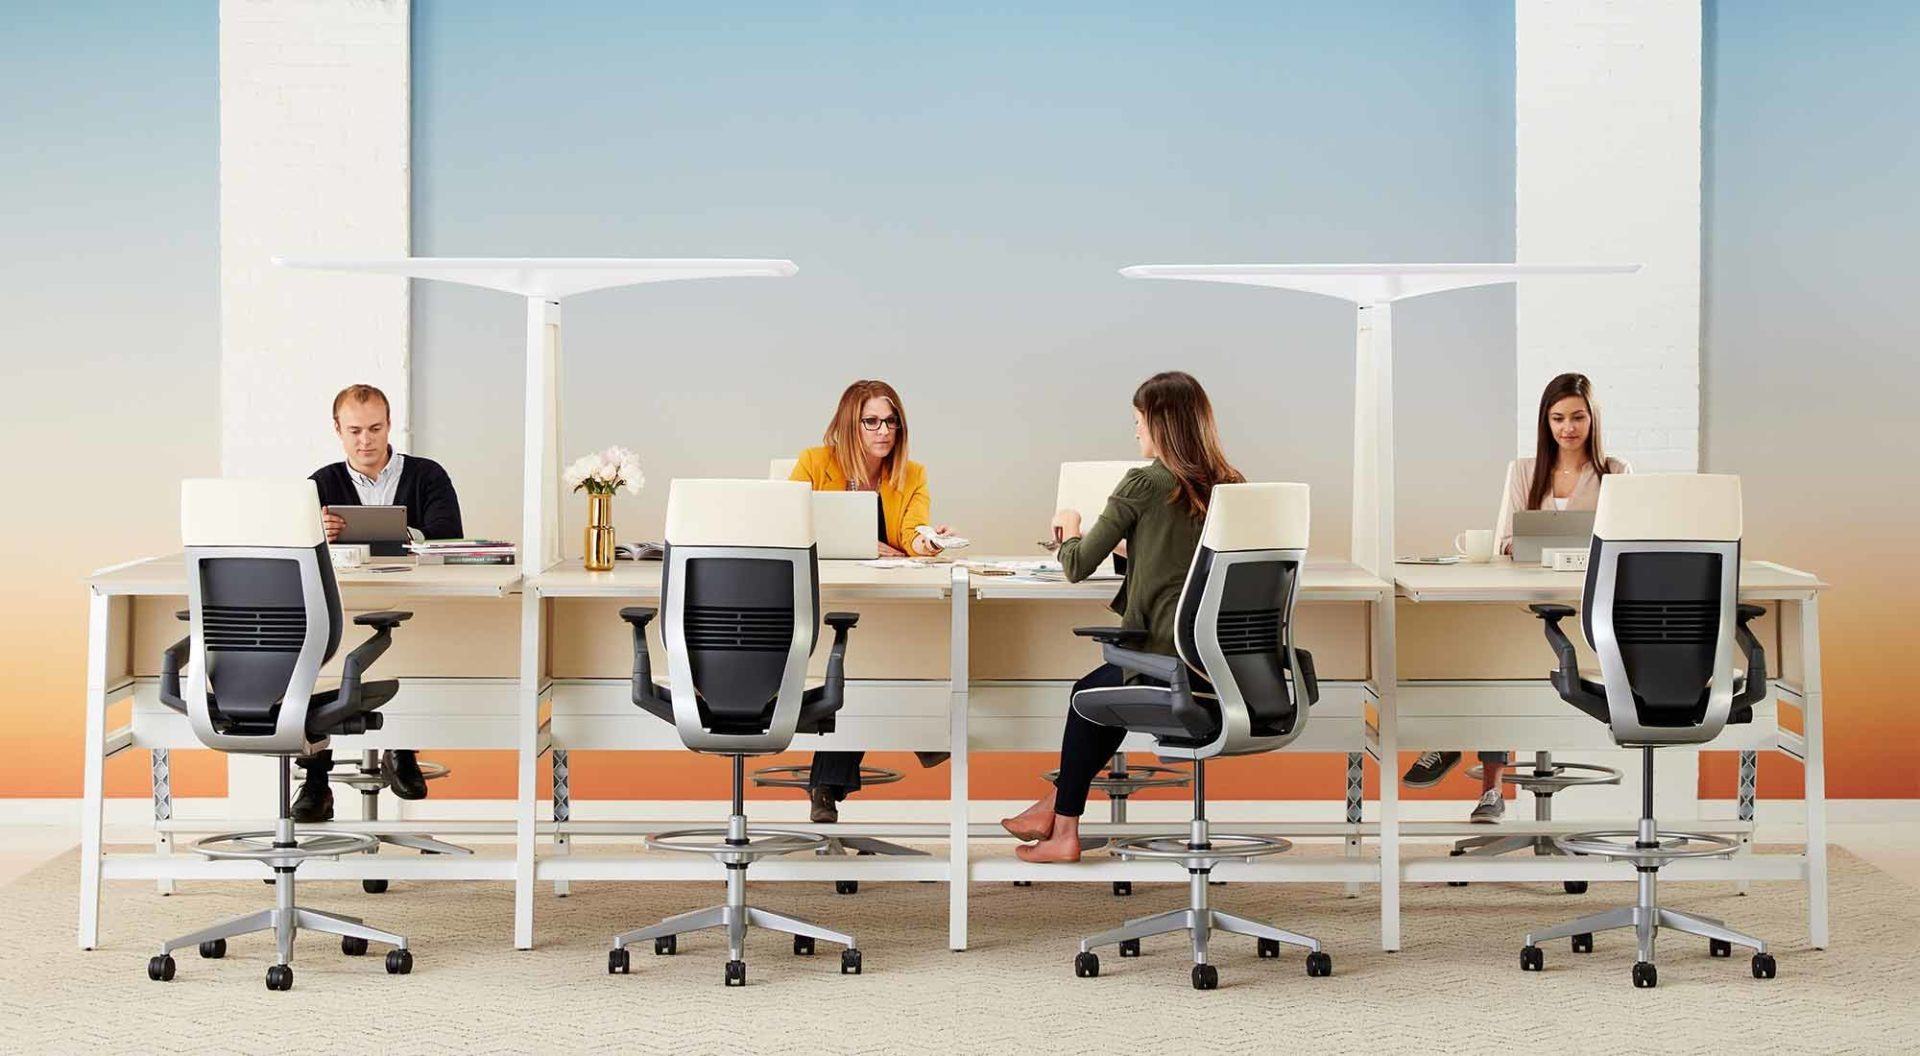 4 Surprising Benefits of Coworking Spaces